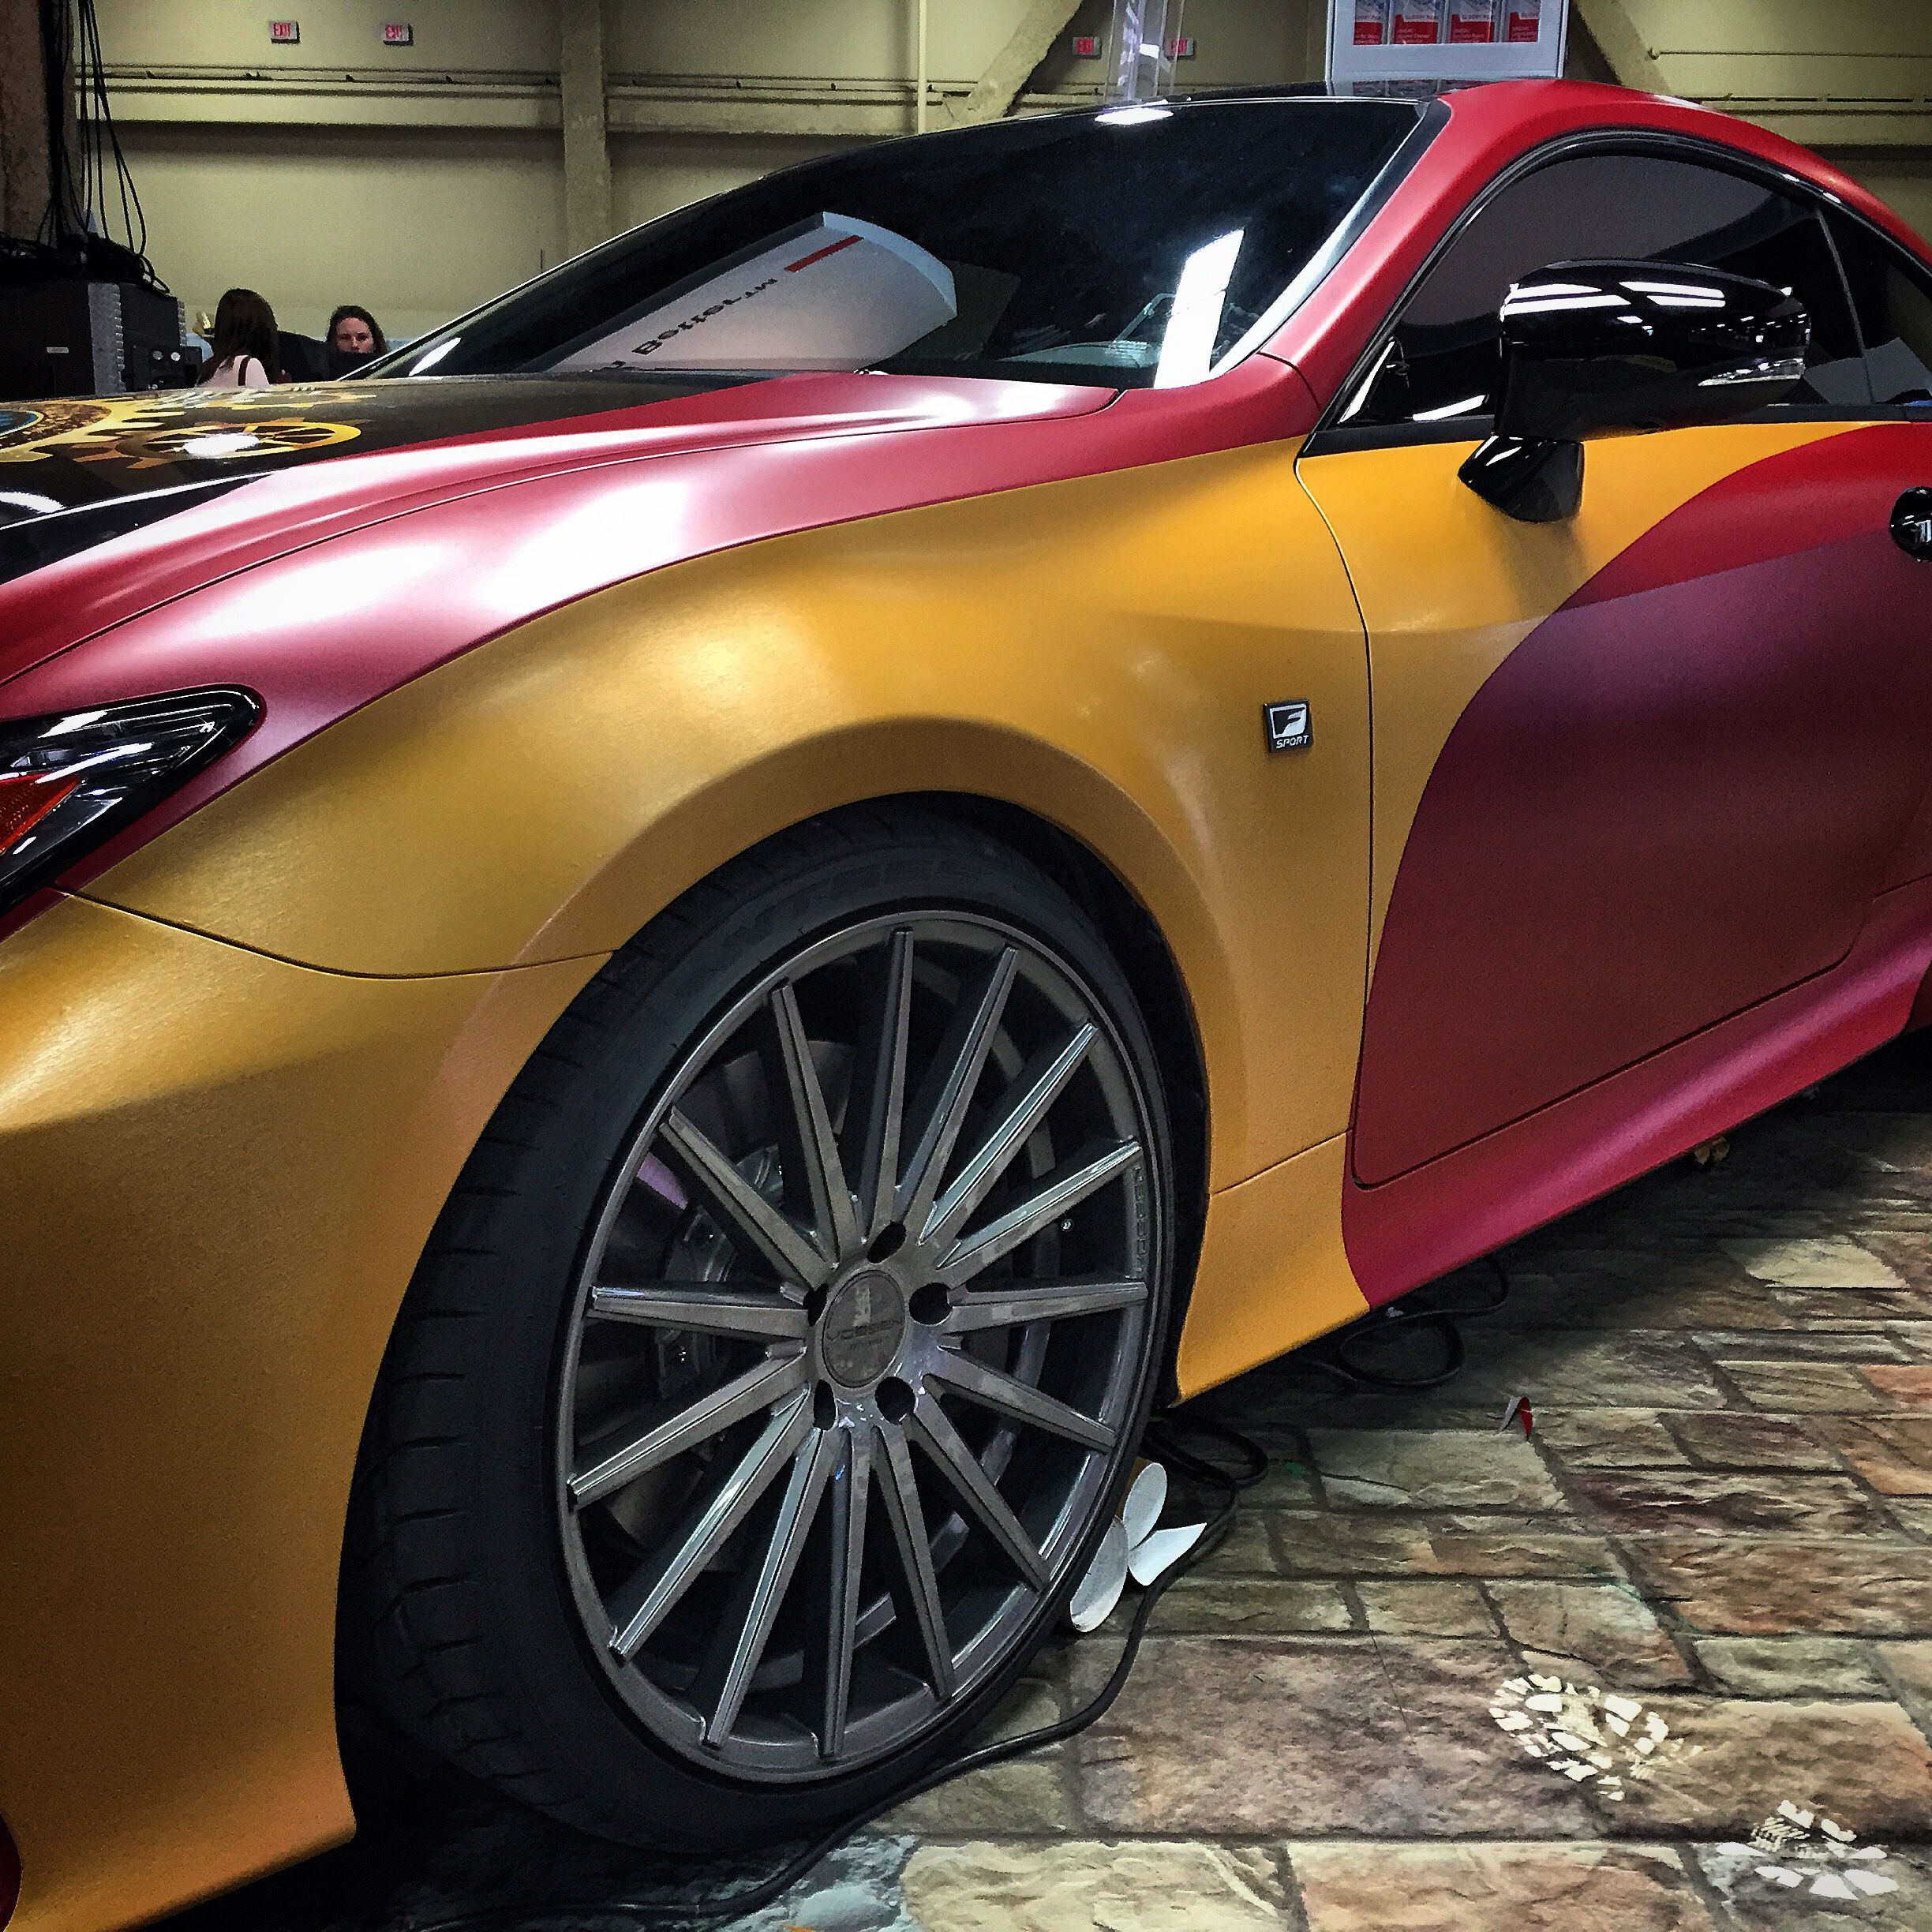 Lexus RC 350 F Sport wrapped in ORACAL 975 brushed gold